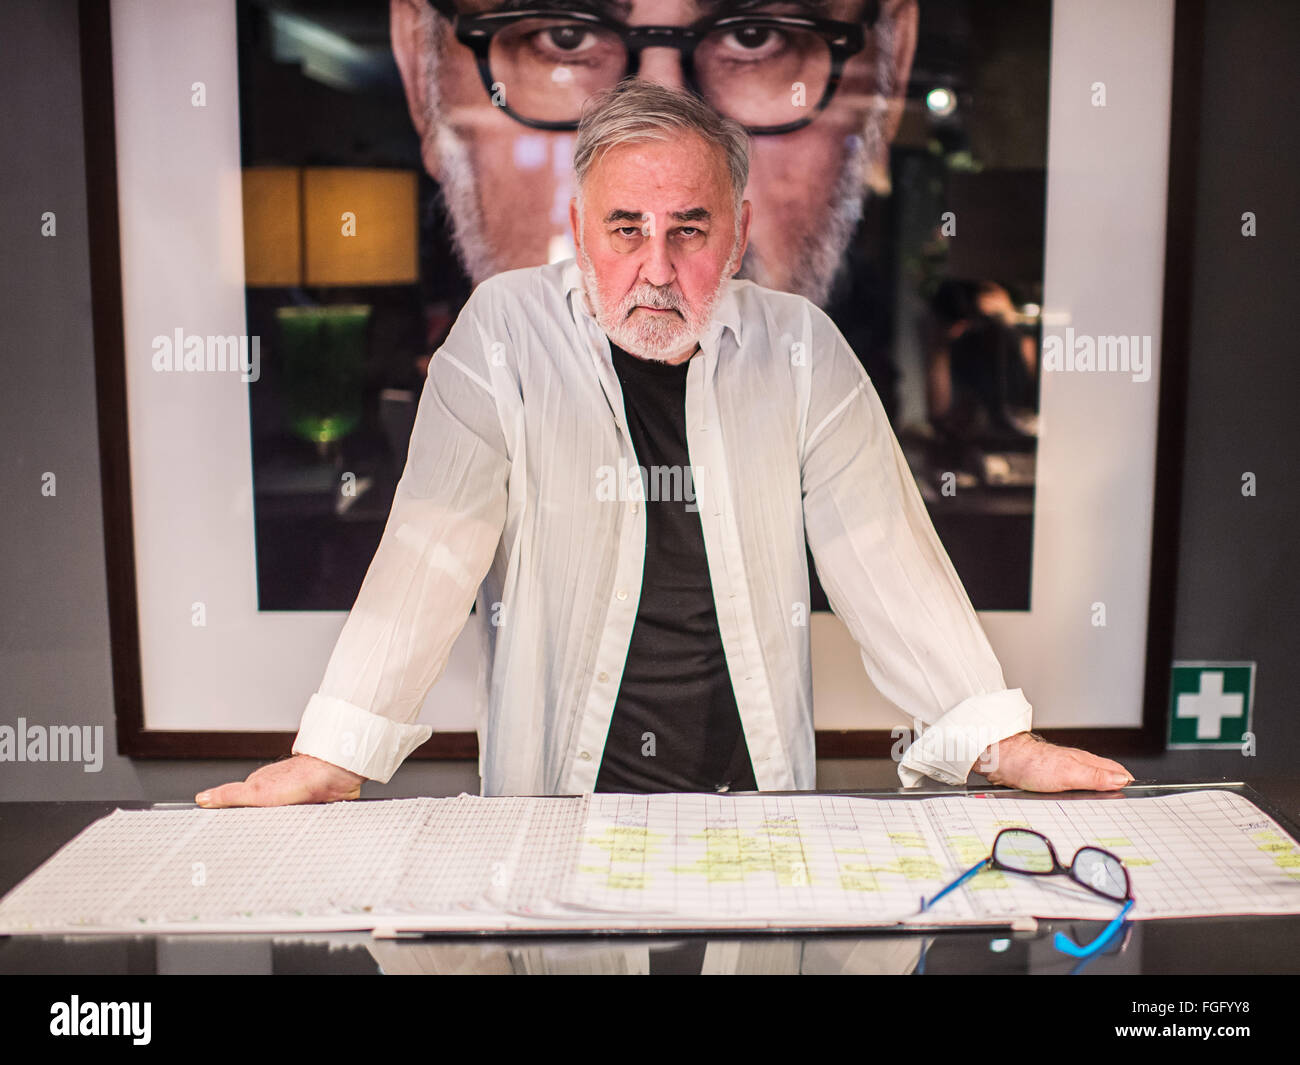 Berlin, Germany. 2nd Feb, 2016. Celebrity hairdresser Udo Walz pictured at his ahir dresser studio in Berlin, Germany, - Stock Image